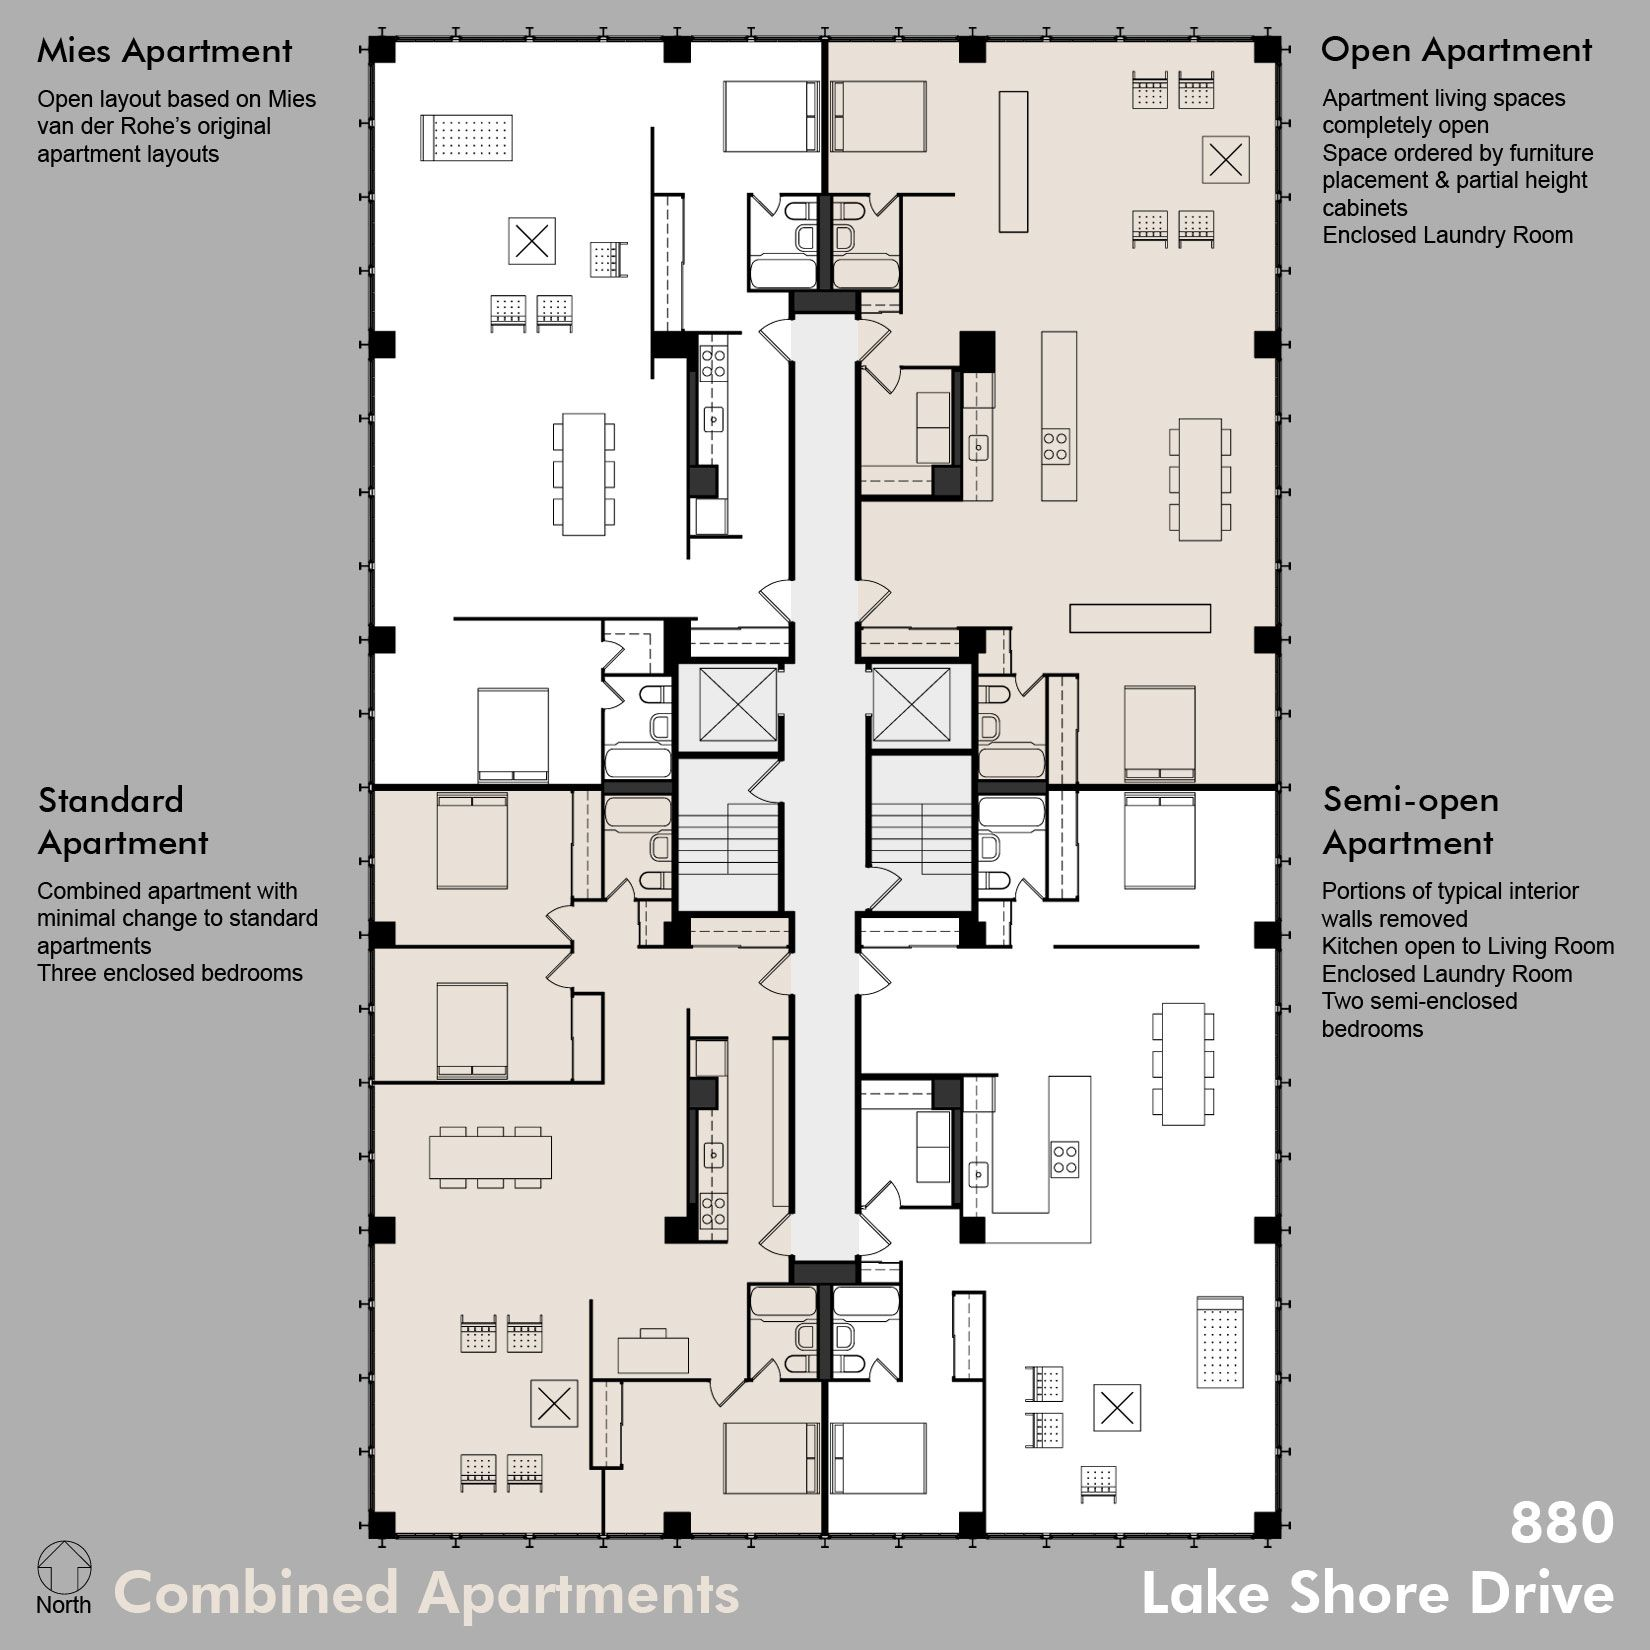 860880lakeshoredrive.com Flexible-floor-plans